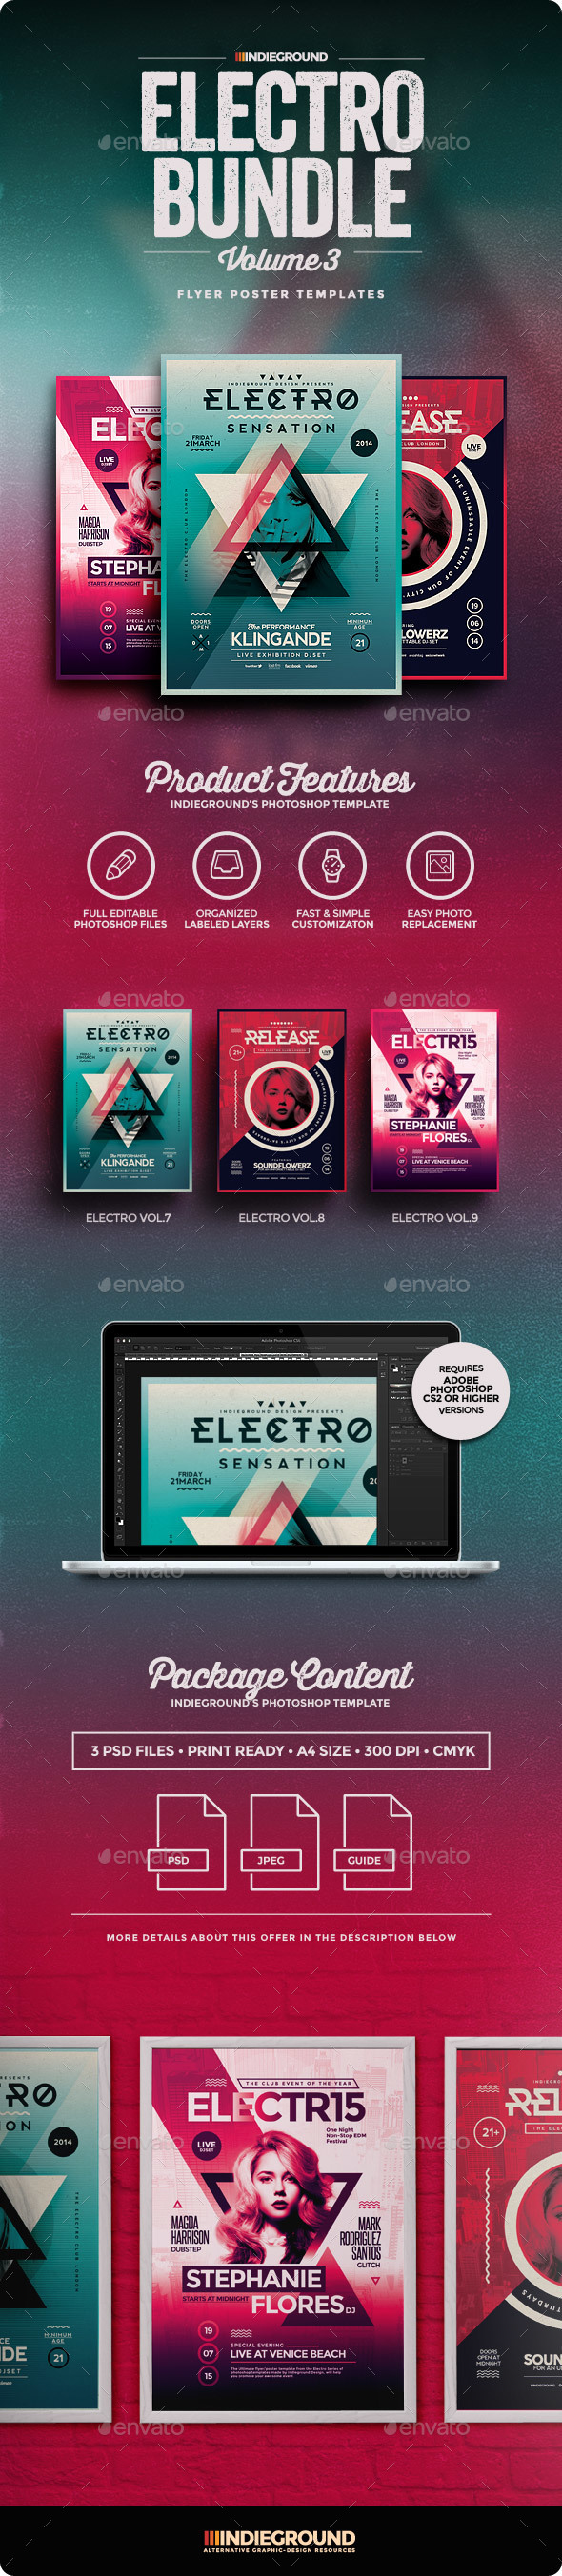 Electro Flyer Poster Bundle Vol 7-9